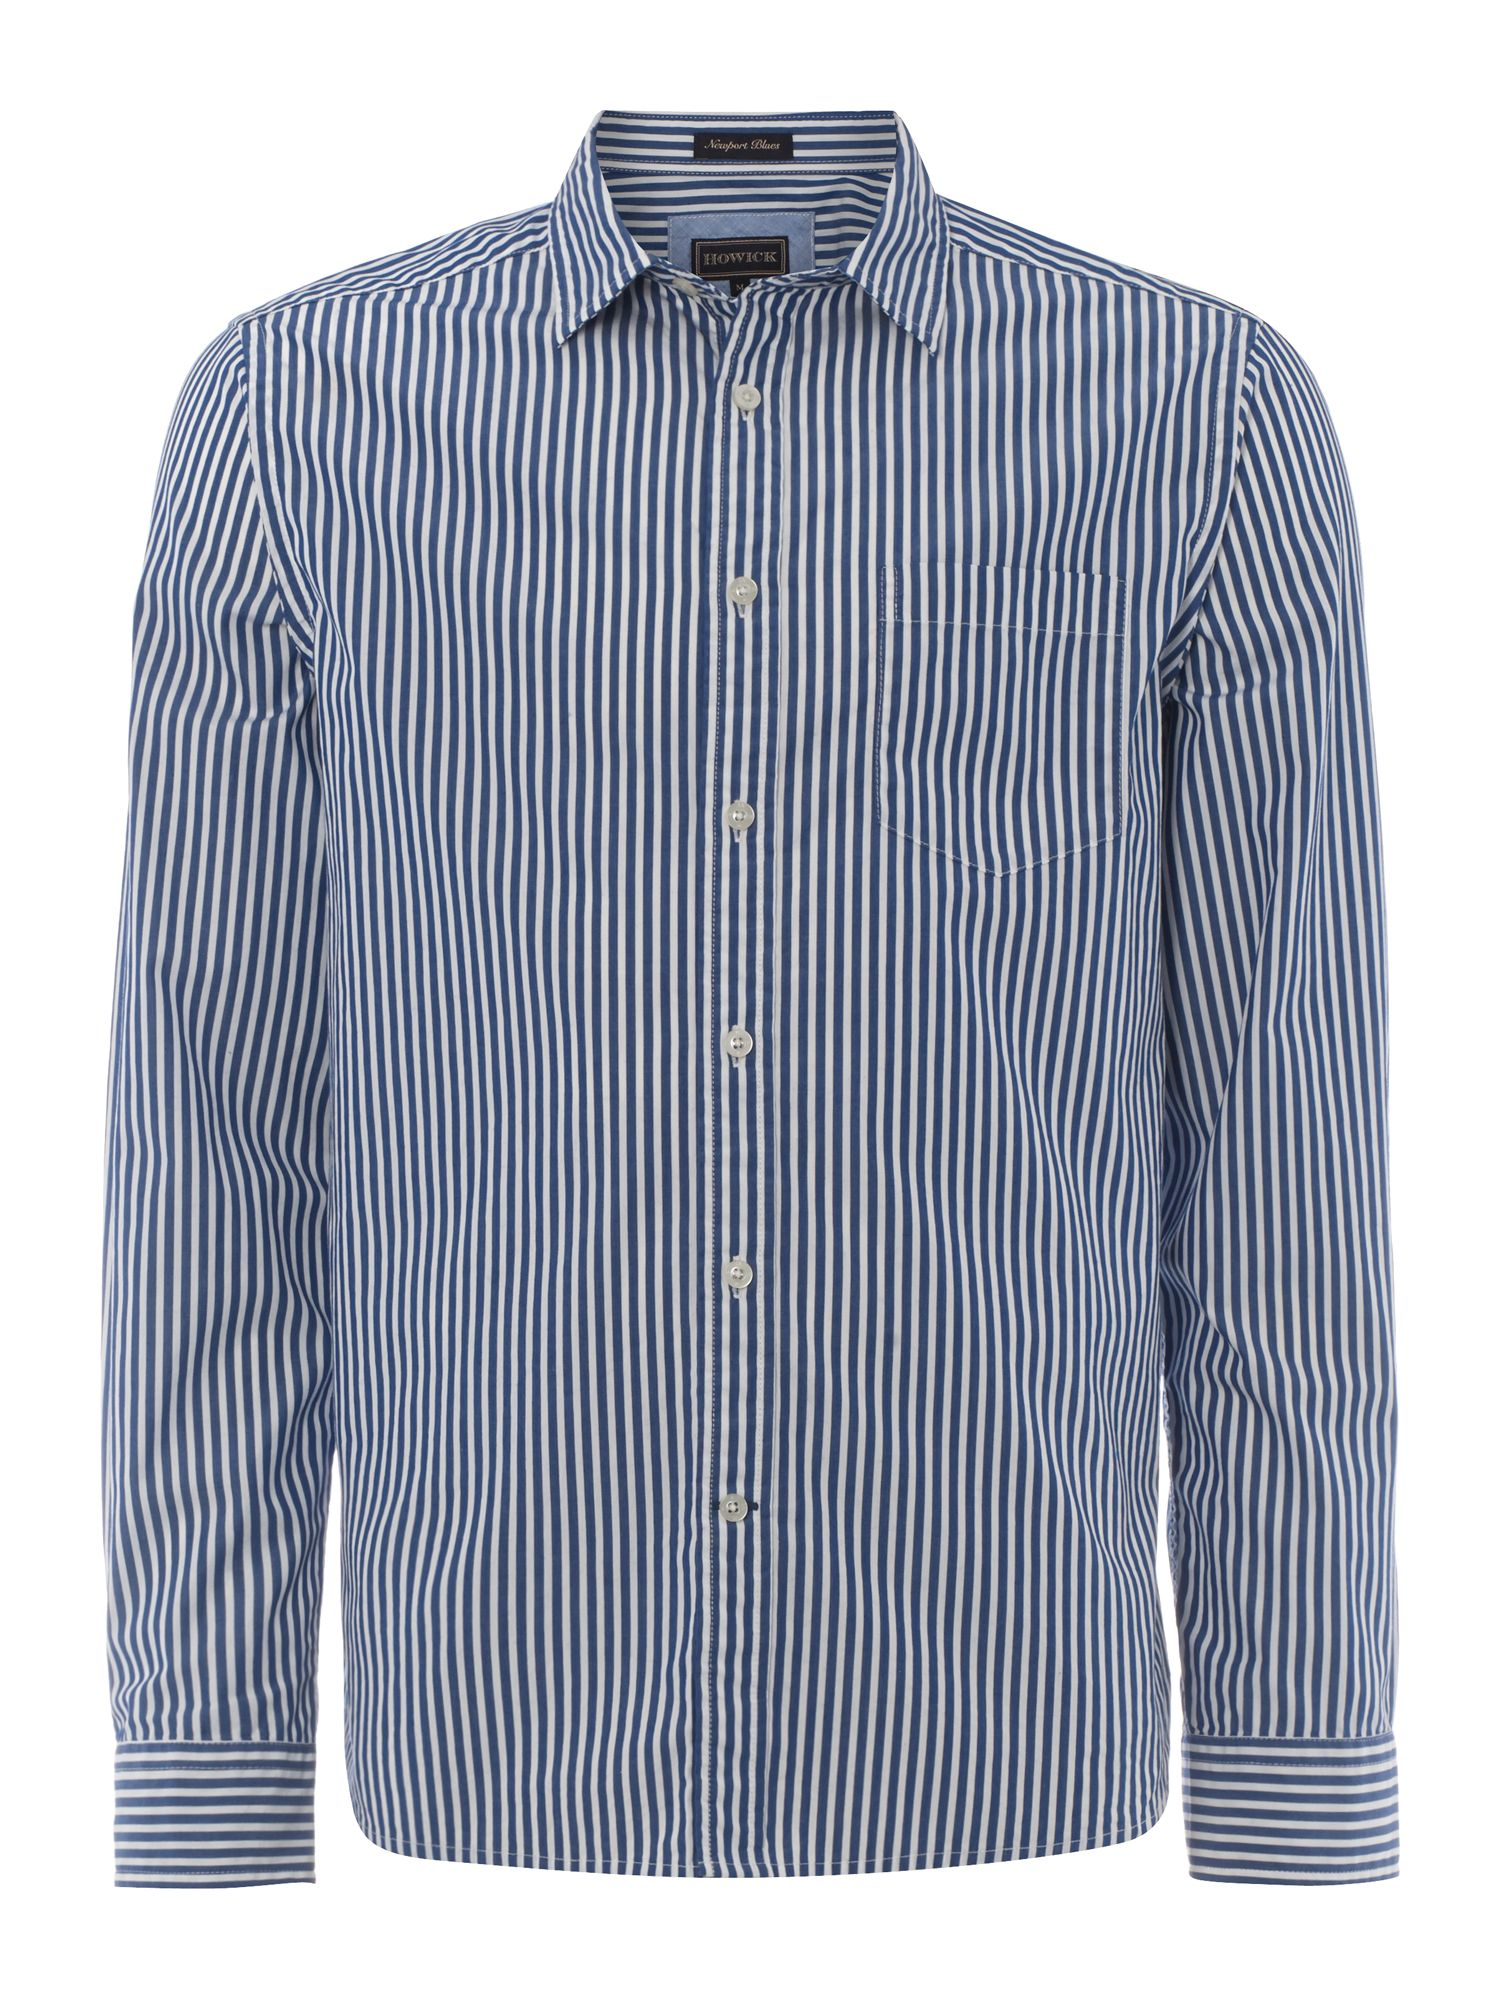 Wilton Stripe Shirt